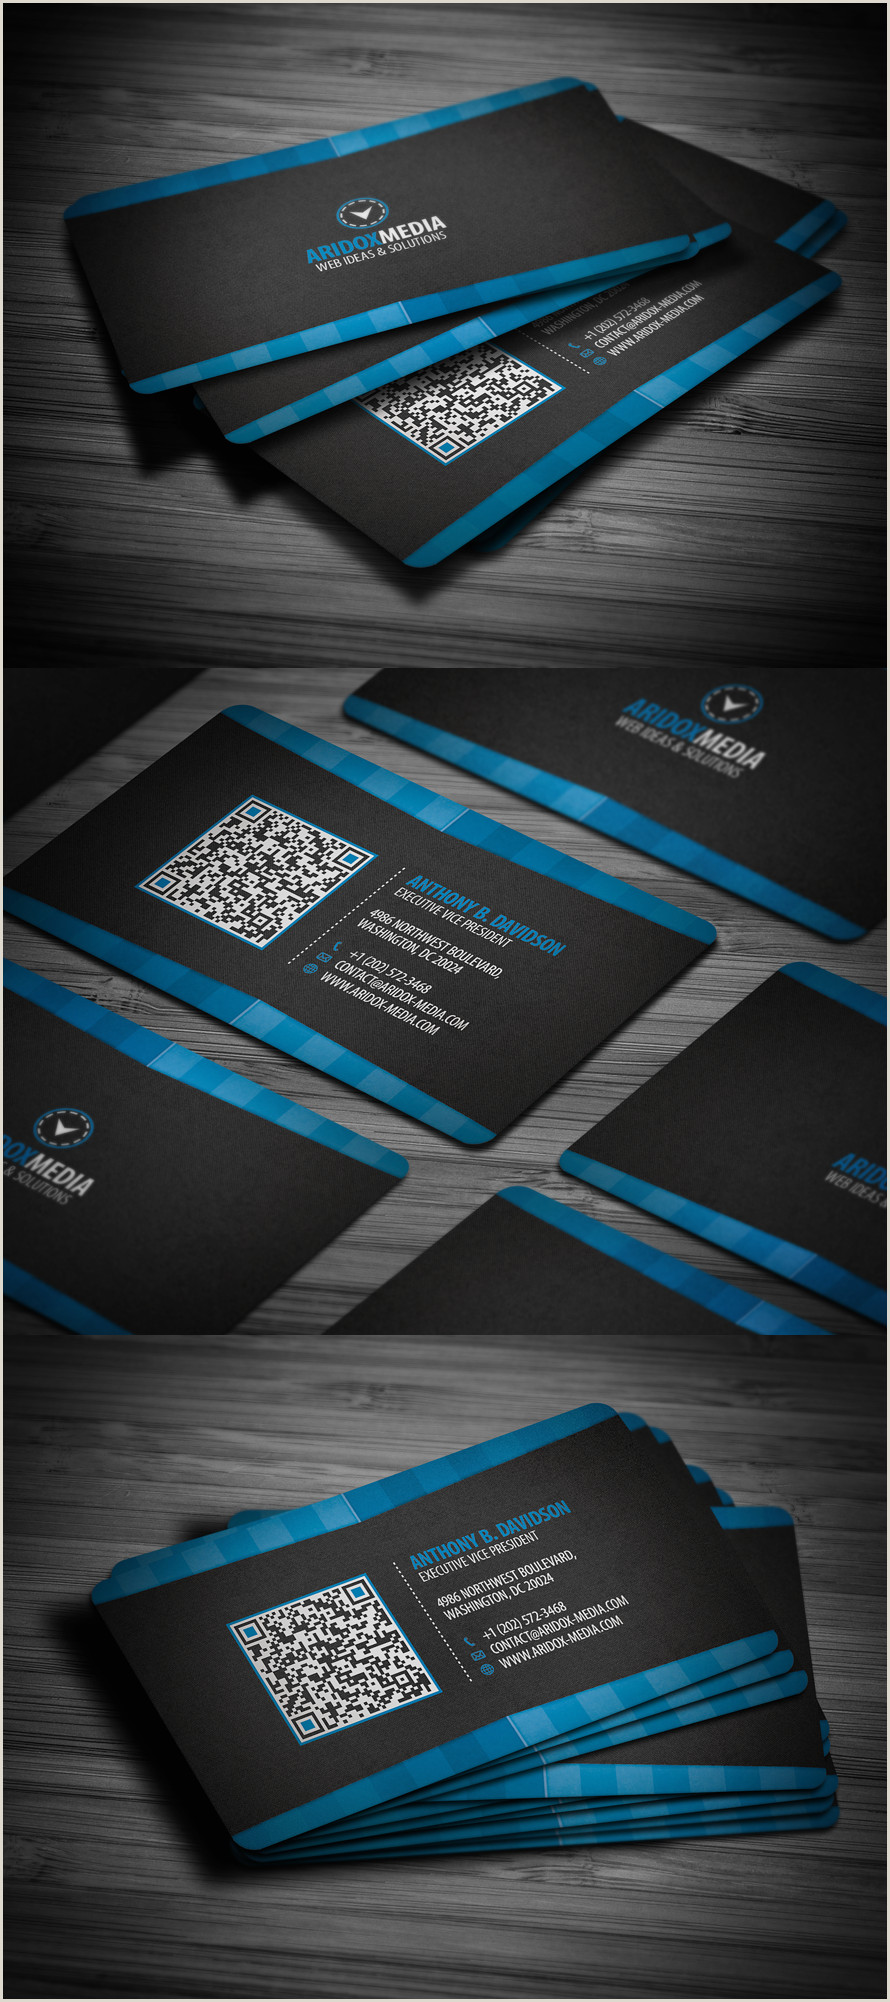 Who Makes The Best Business Cards Professional Corporate Business Card By Flowpixel On